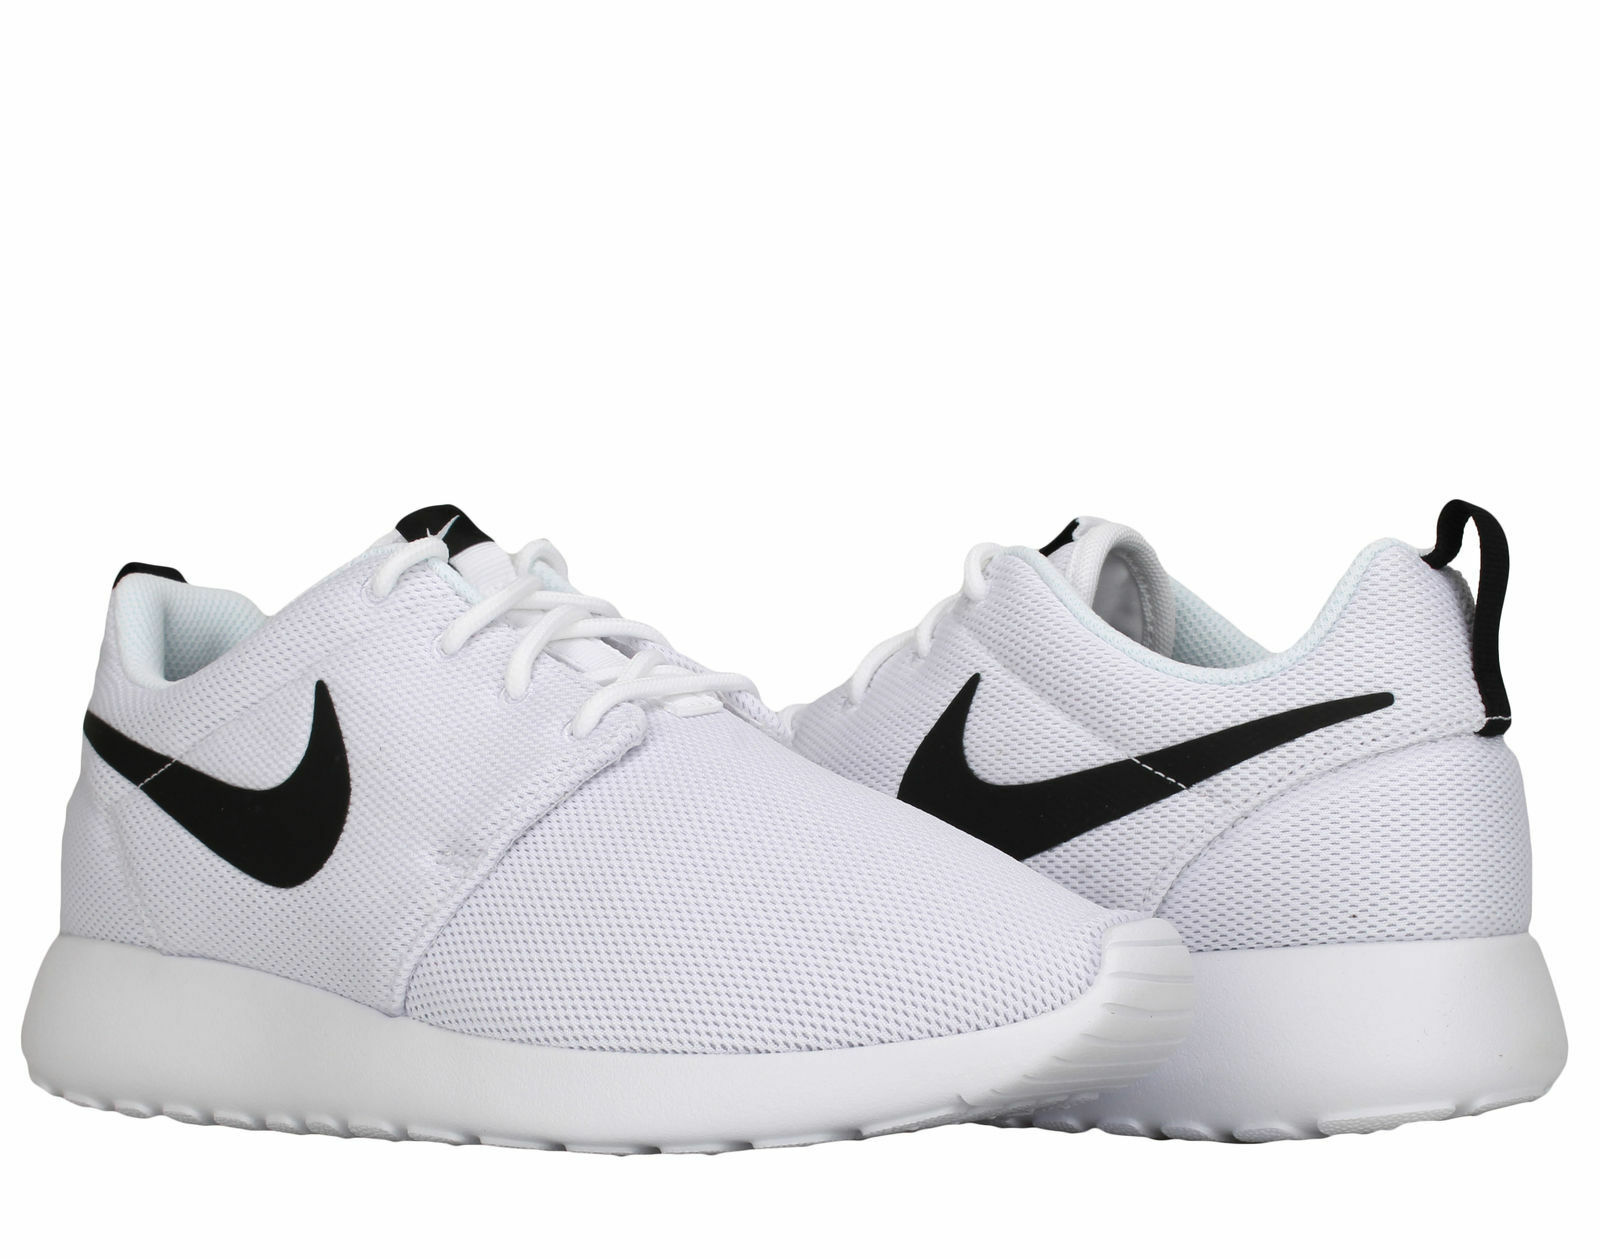 Wouomo Nike Roshe One Lifestyle bianca nero Dimensiones 6-10 New In Box 844994-101